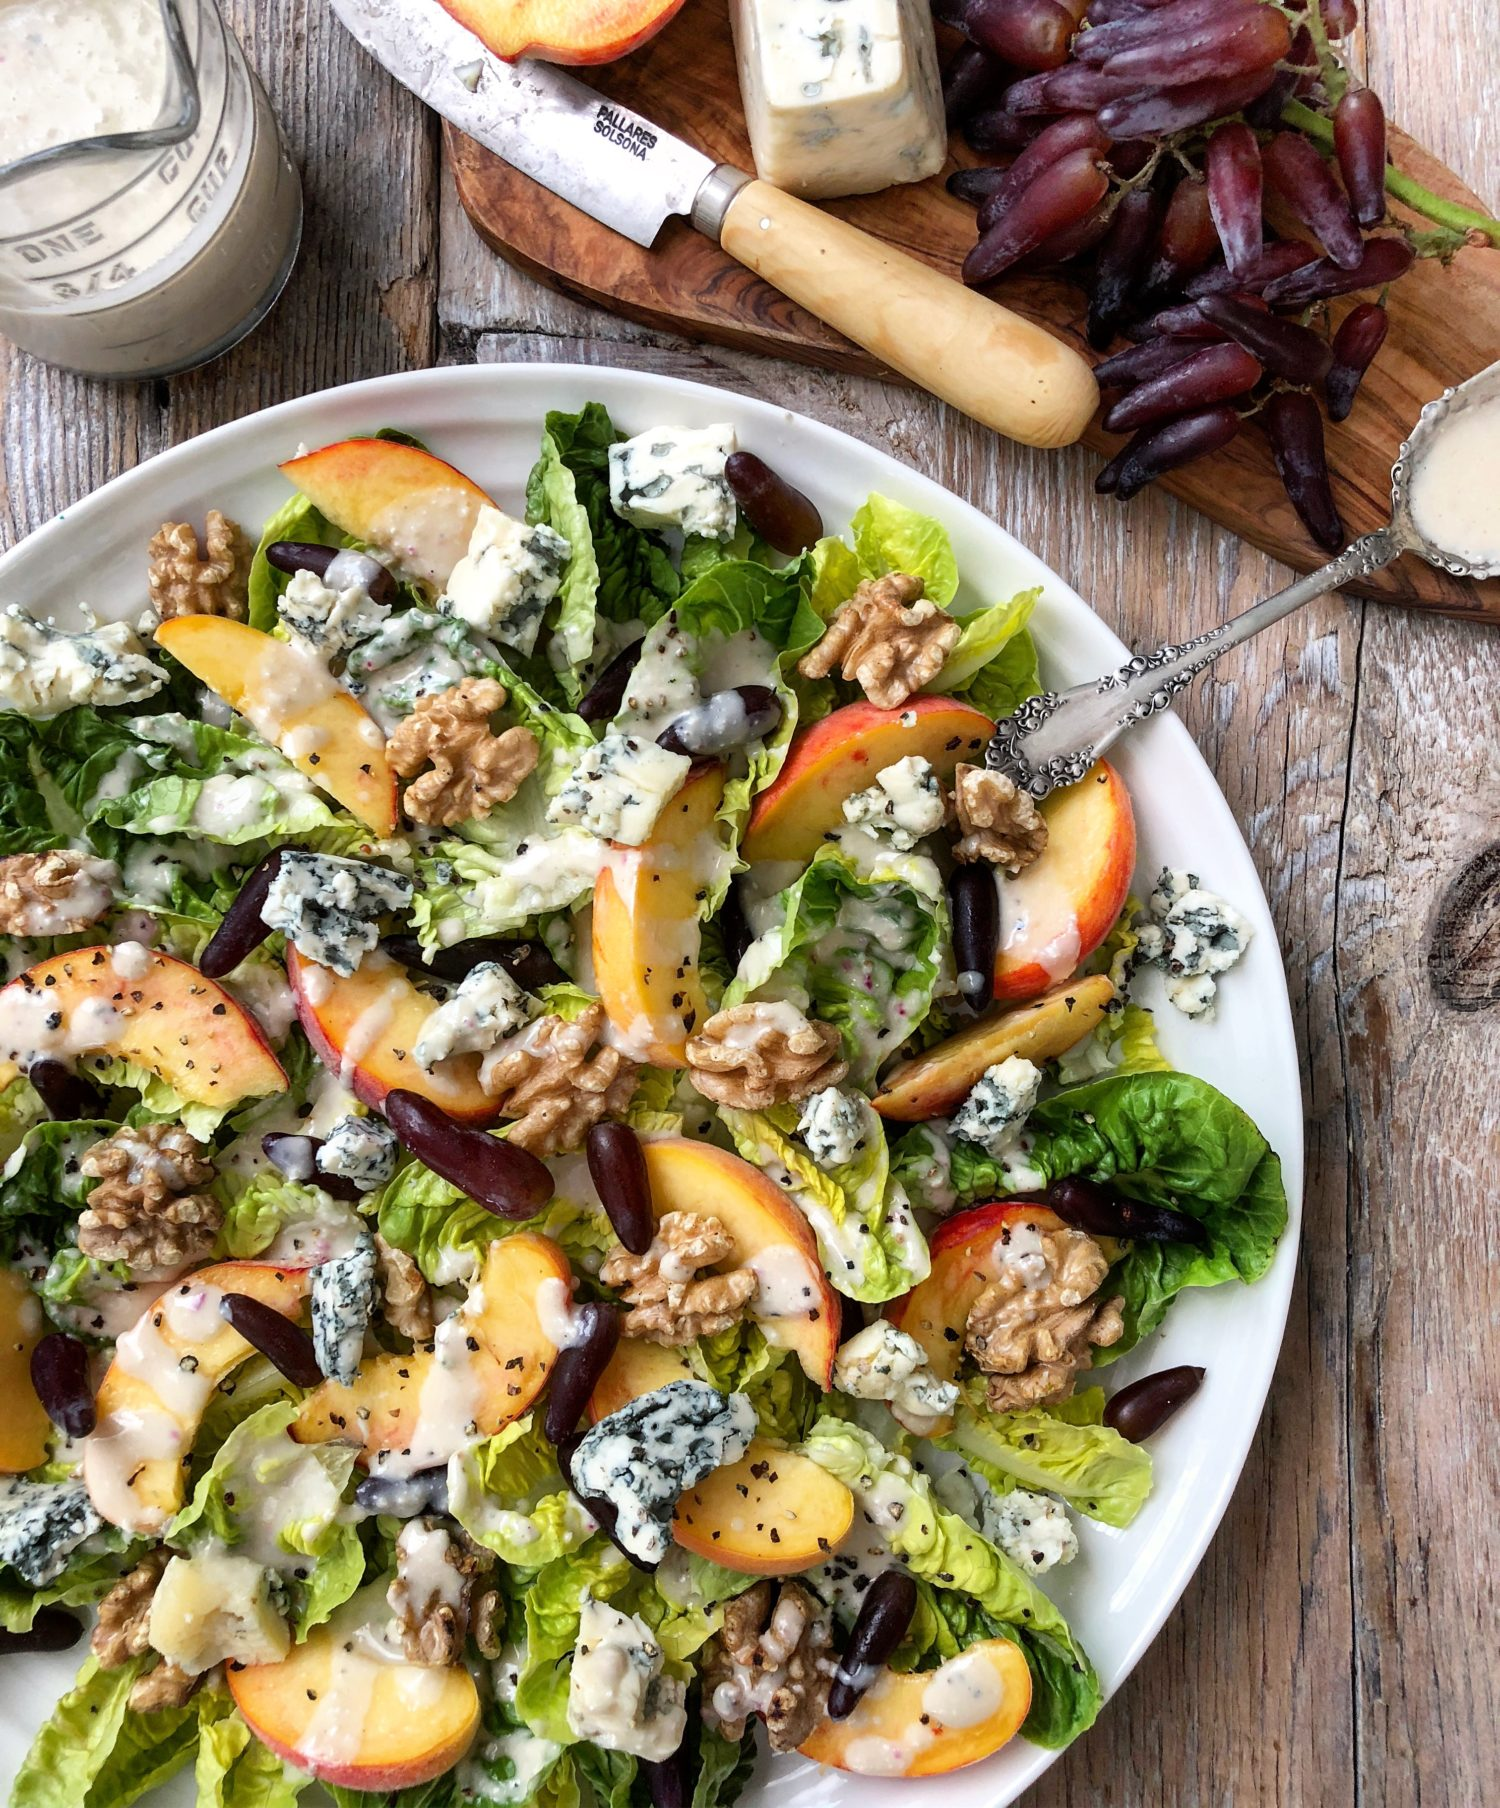 Seasonal Peach and Little Gems Salad with Walnuts, Grapes and Blue Cheese Dressing